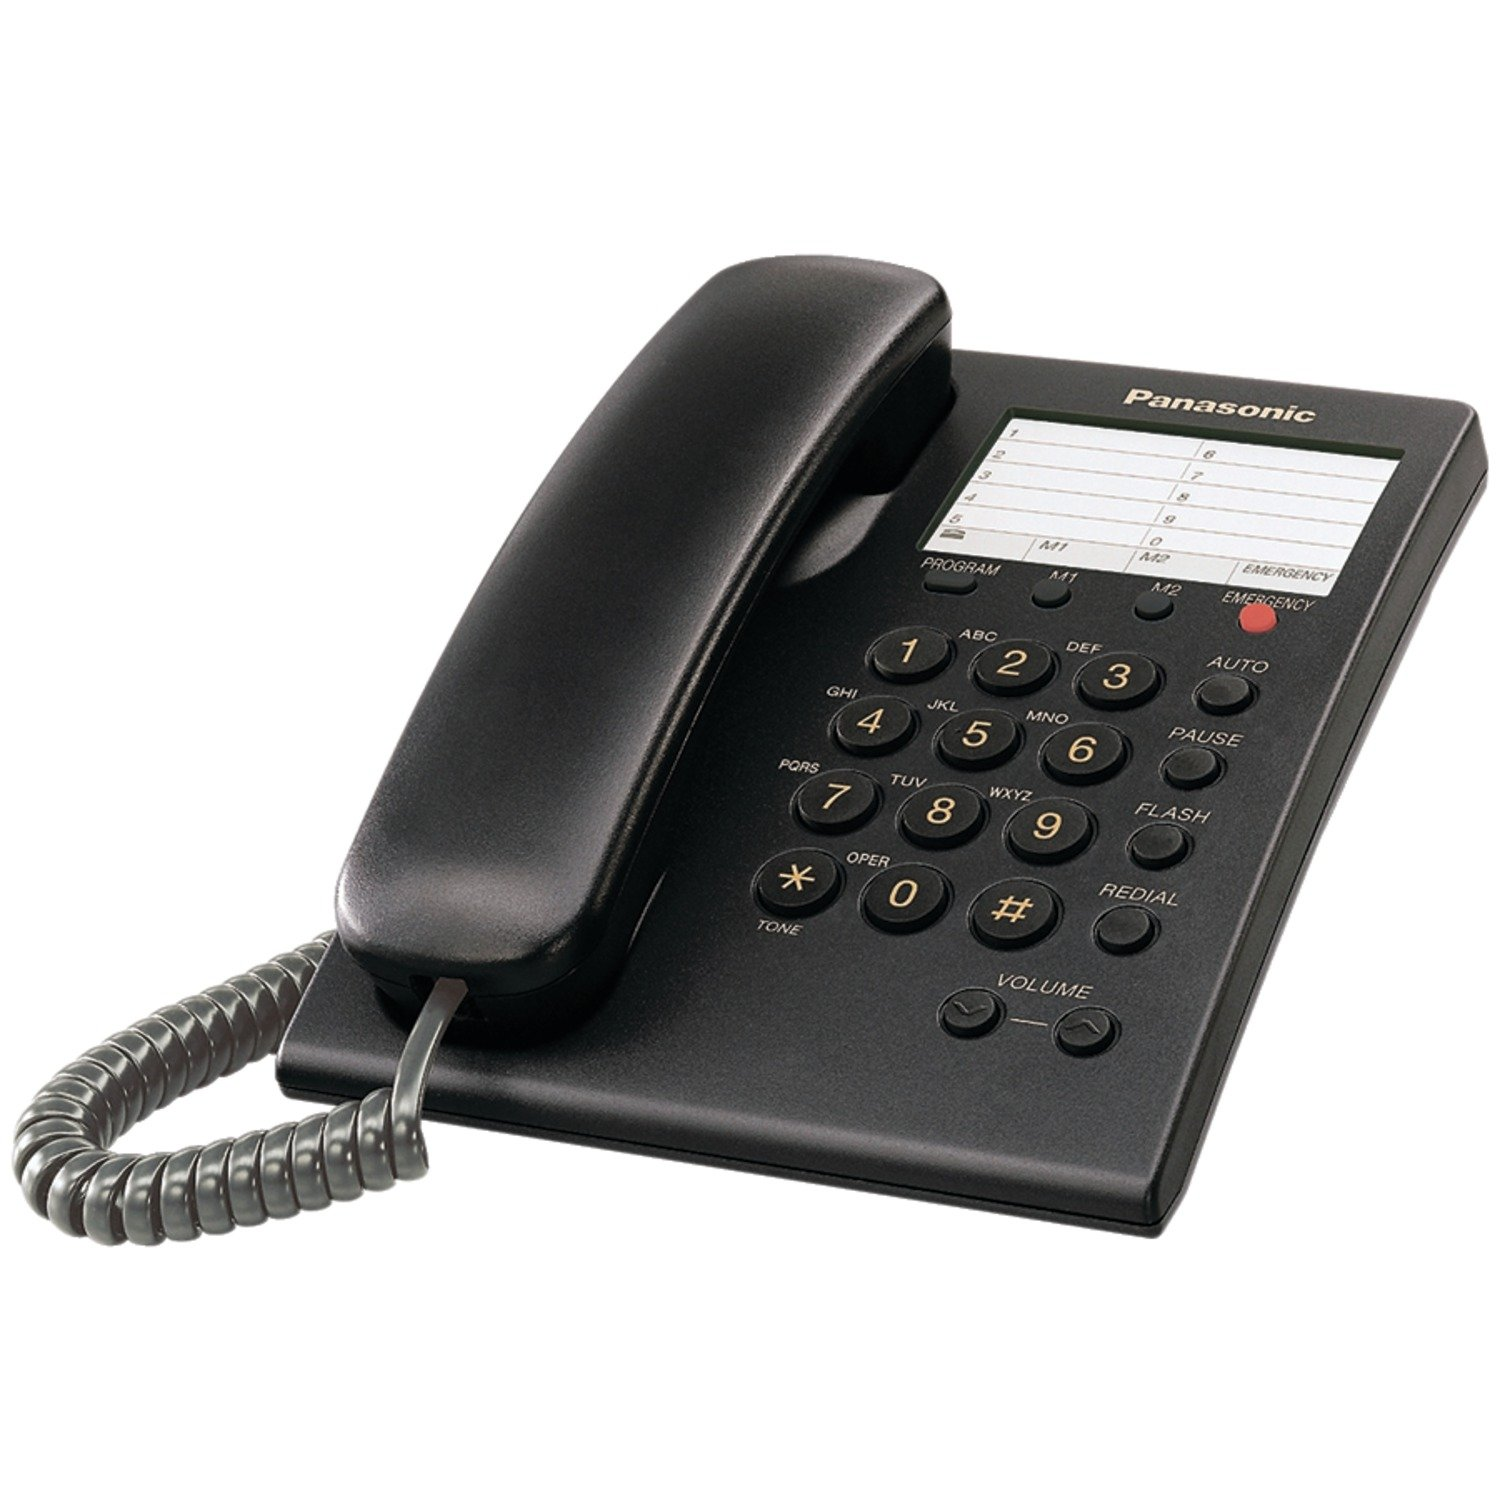 Panasonic KX-TS550B Integrated Corded Phone, Black